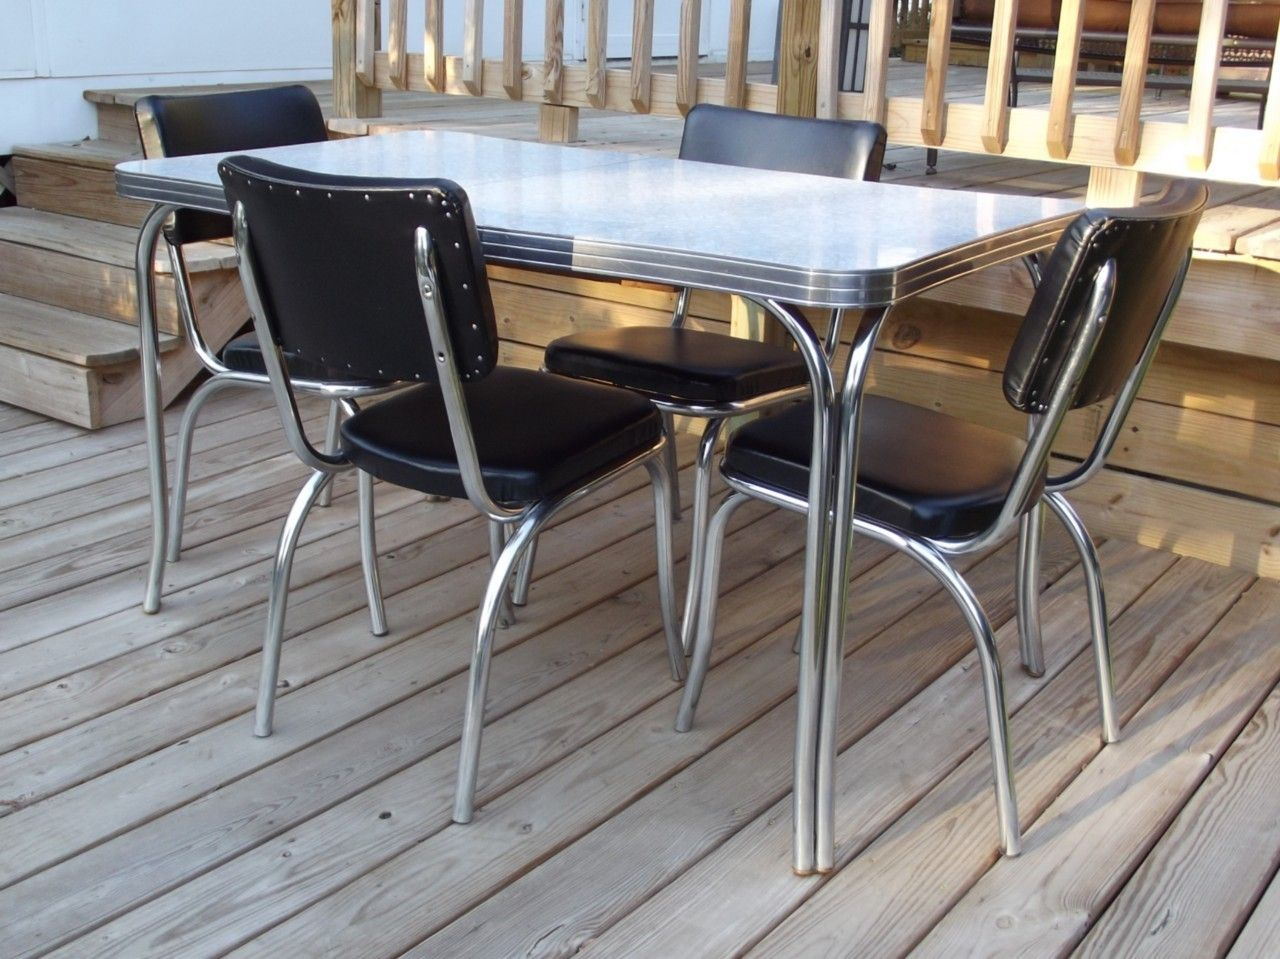 formica tables vintage kitchen tables Vintage Retro s Kuehne Dining Kitchen Formica Chrome Table 4 Chairs Eames